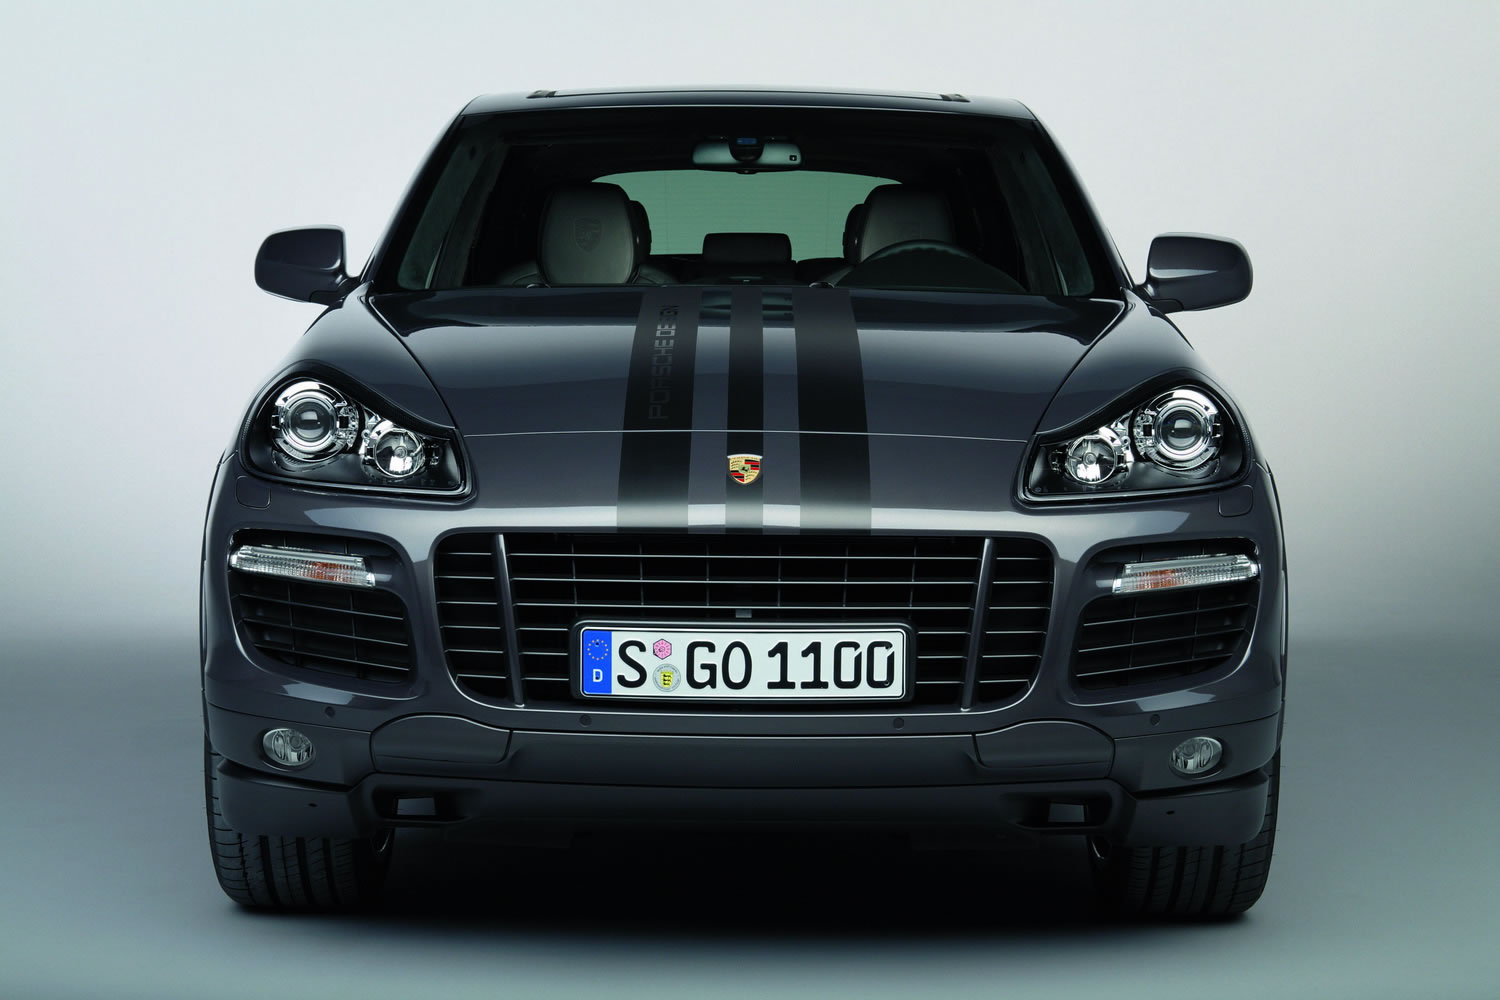 porsche cayenne gts porsche design edition 3. Black Bedroom Furniture Sets. Home Design Ideas